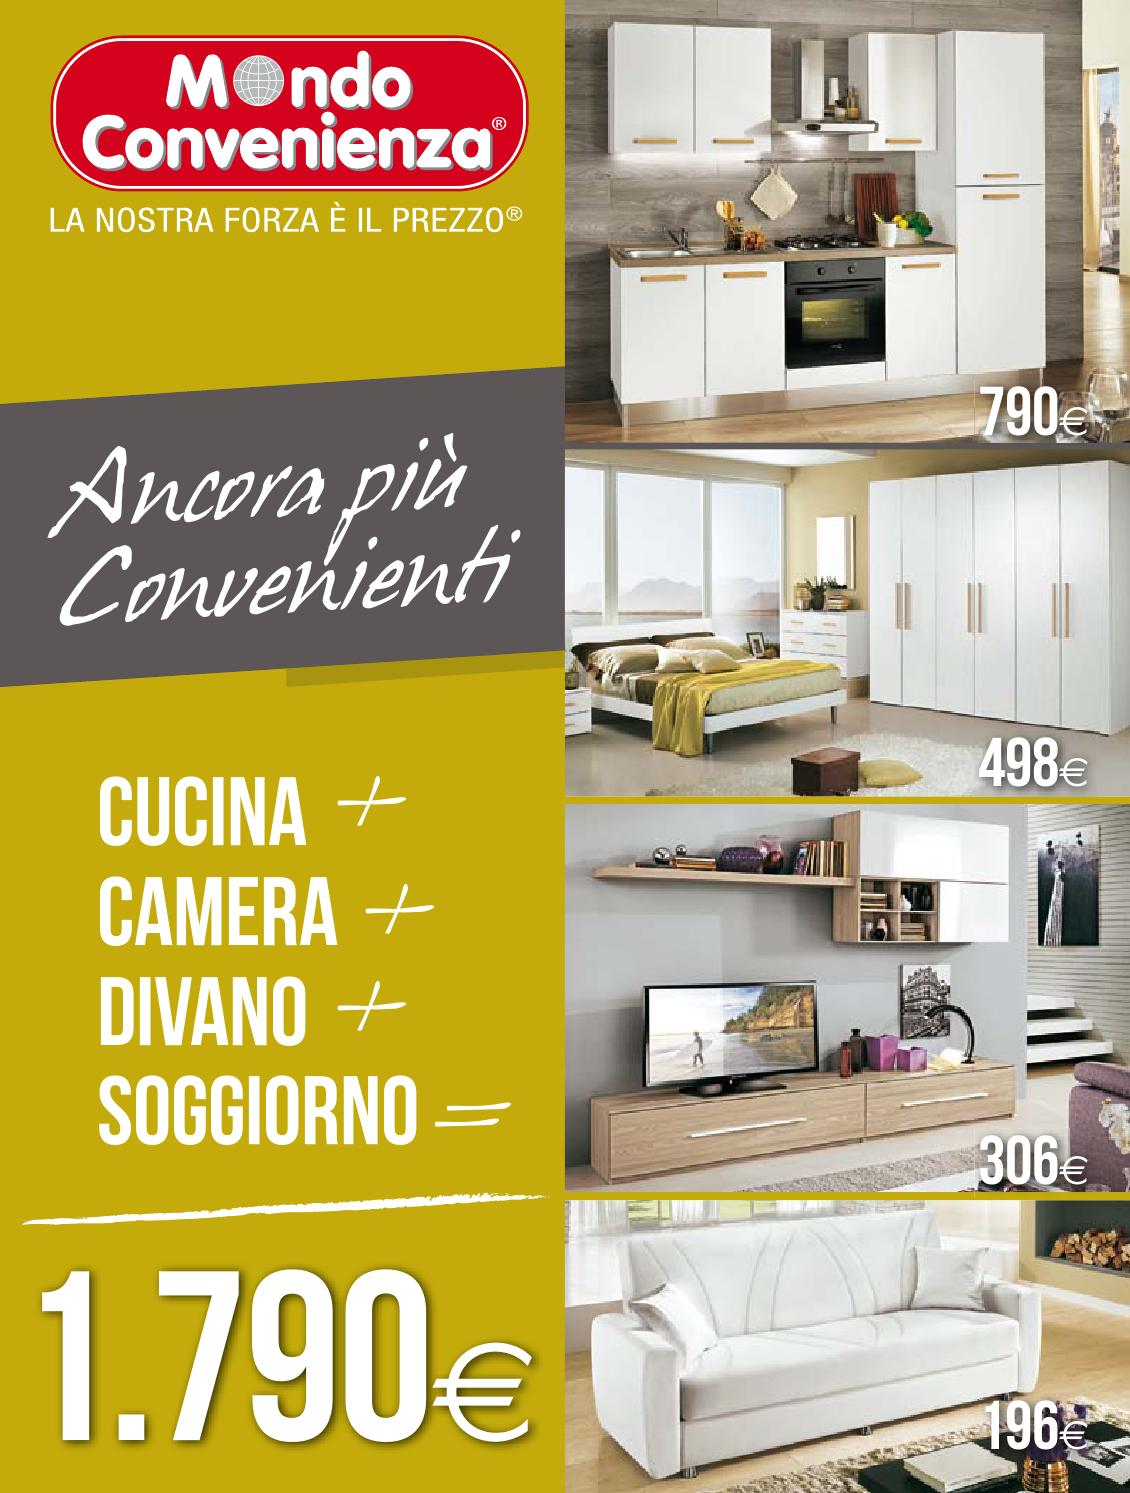 Best Mondo Convenienza Caserta Cucine Photos - harrop.us - harrop.us